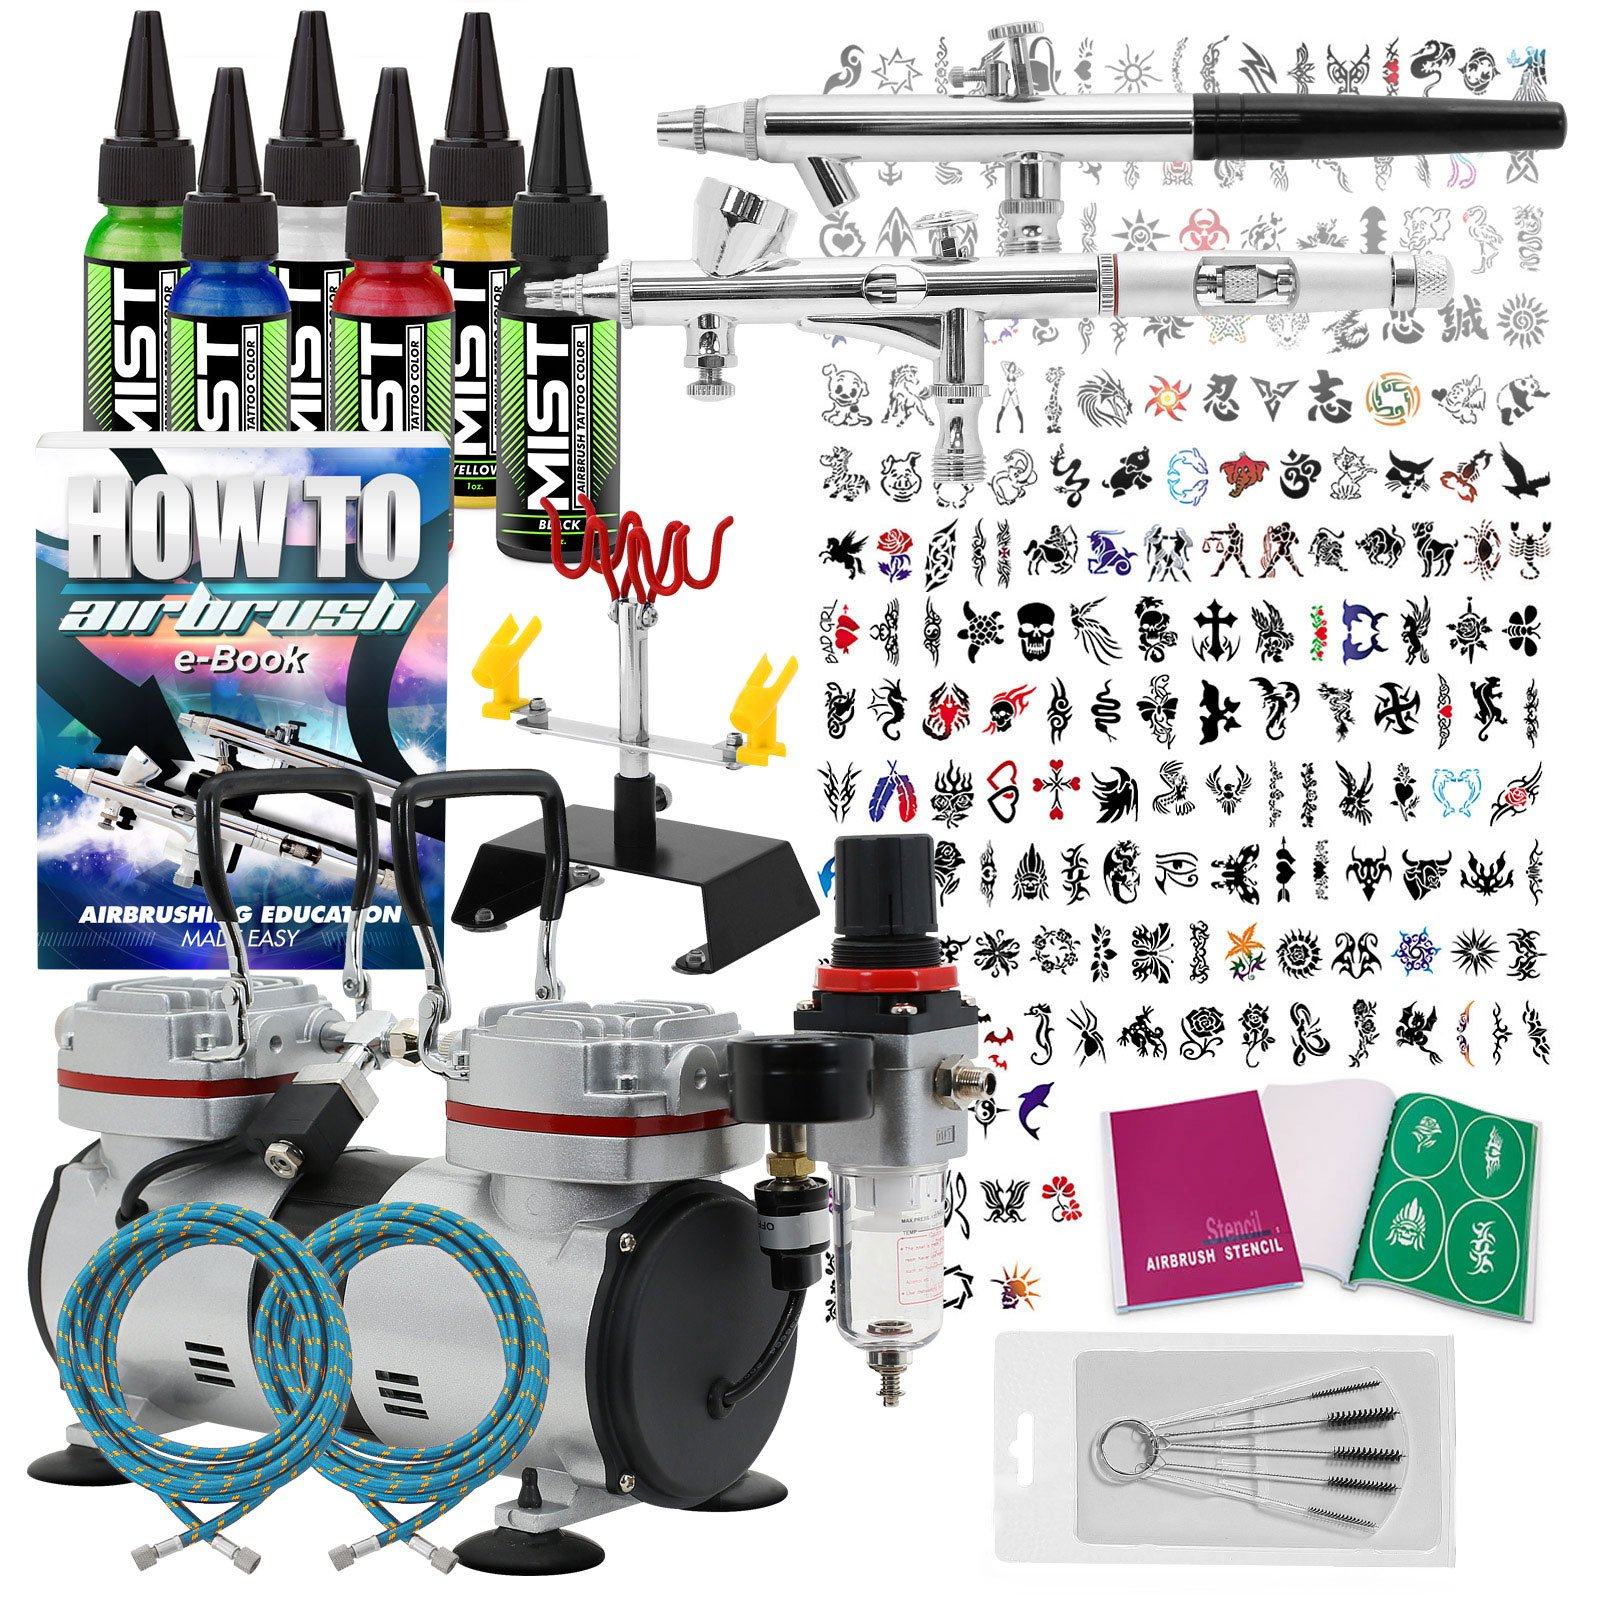 PointZero Complete Temporary Tattoo Airbrush Set - 2 Airbrushes with Compressor and 200 Stencils by Point Zero